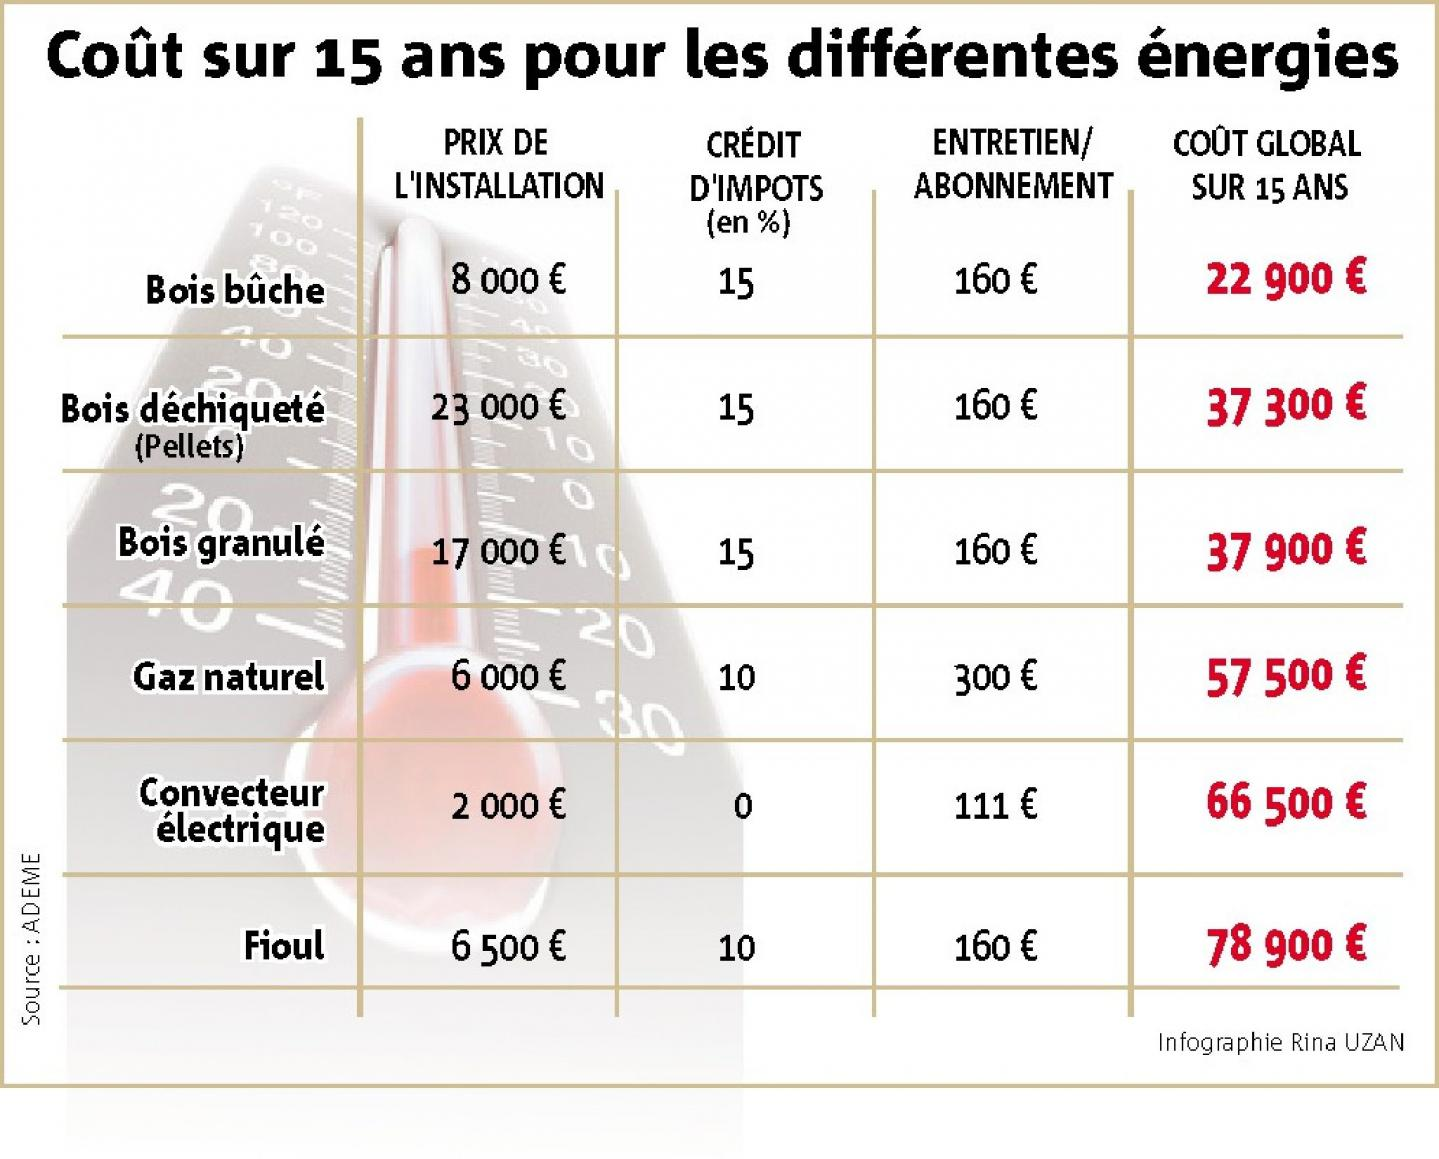 Chauffage : comment - 23203810.jpg